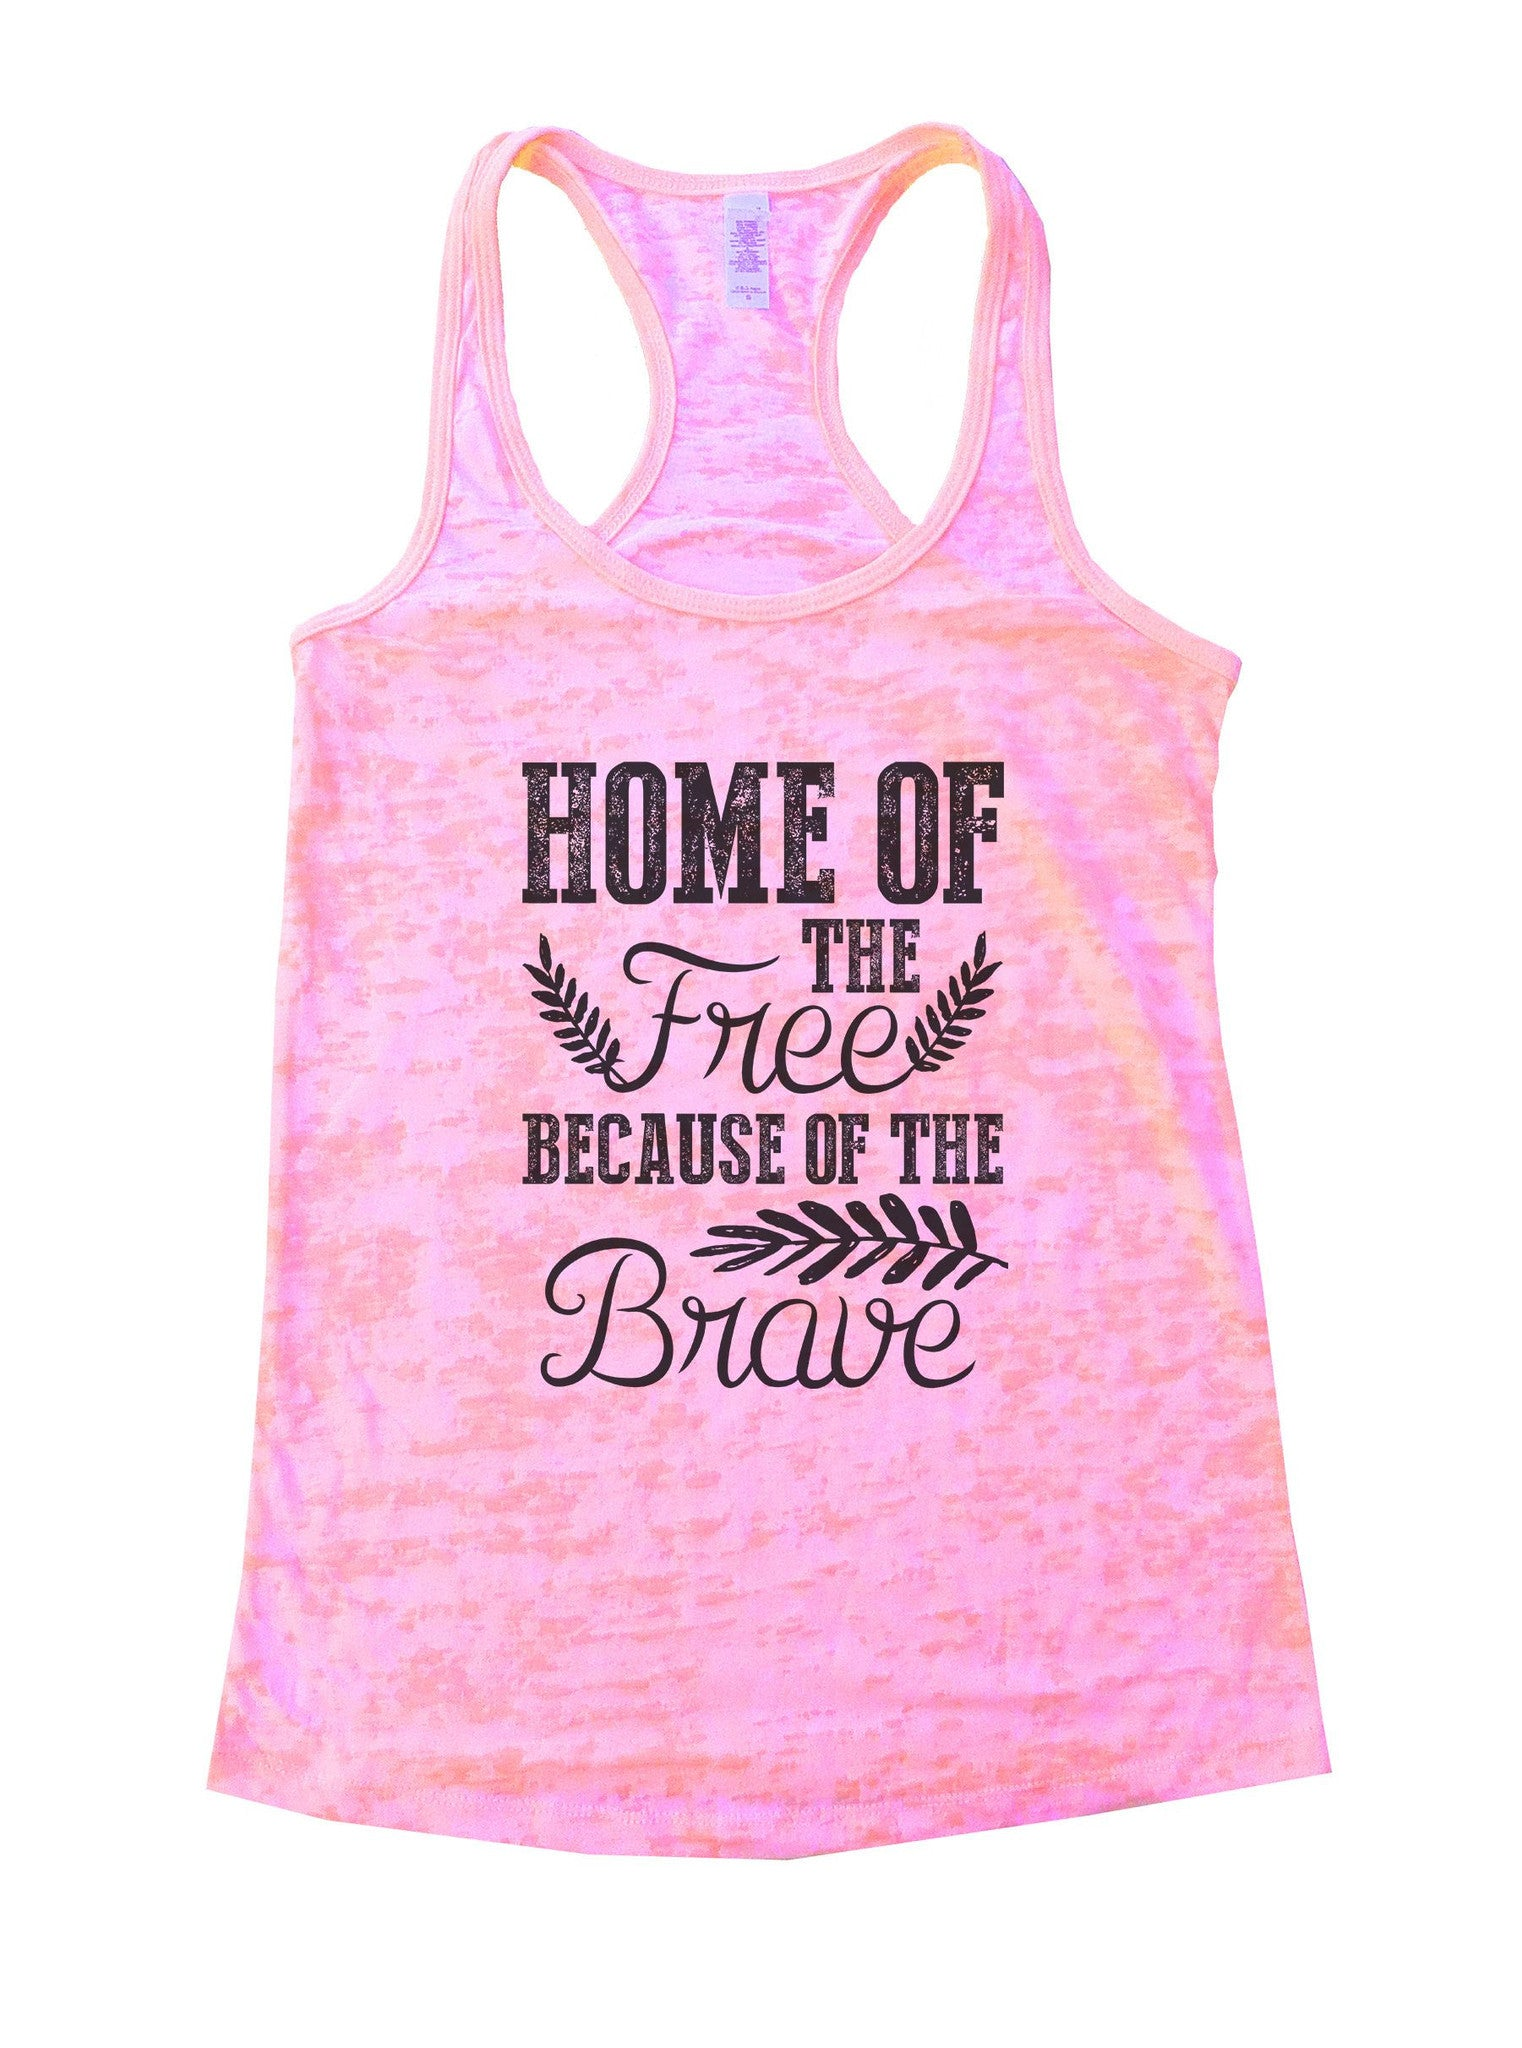 Home Of The Free Because Of The Brave Burnout Tank Top By BurnoutTankTops.com - 978 - Funny Shirts Tank Tops Burnouts and Triblends  - 2